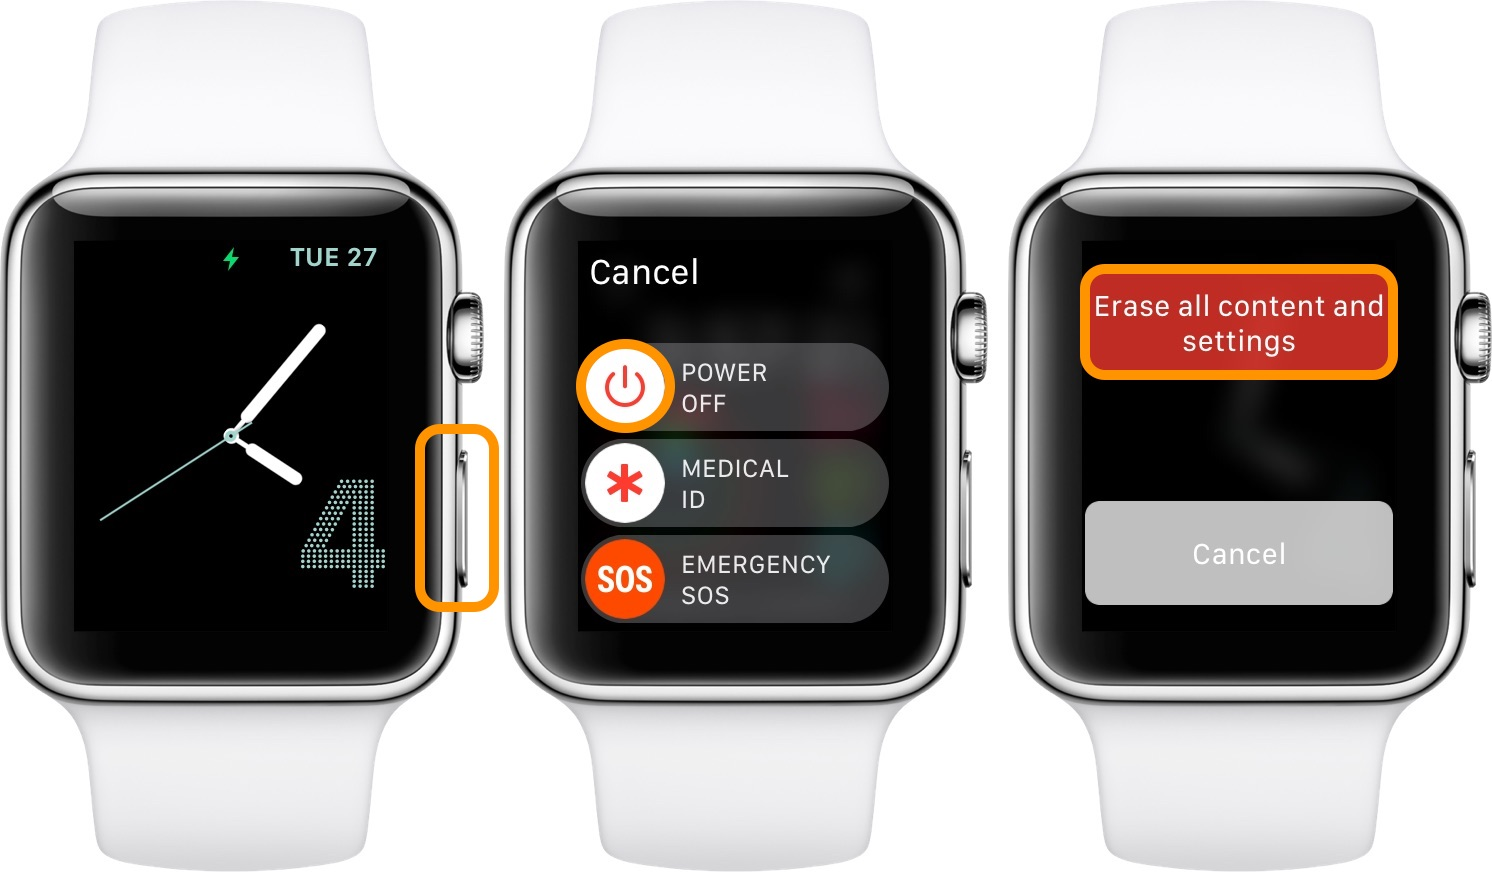 How to factory reset Apple Watch walkthrough 3